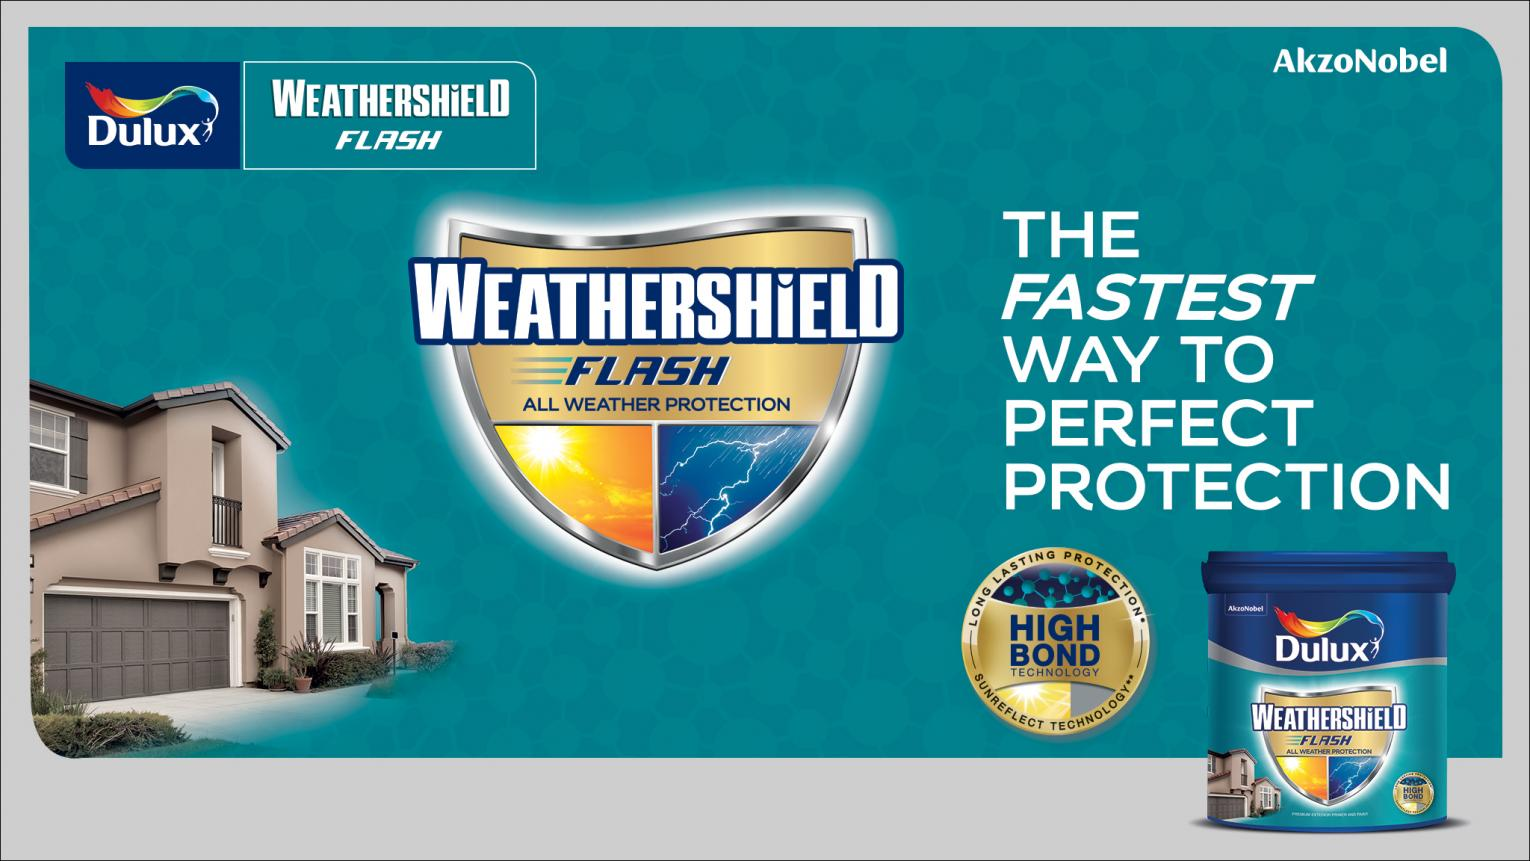 Weathershield Flash - The fastest way to perfect protection